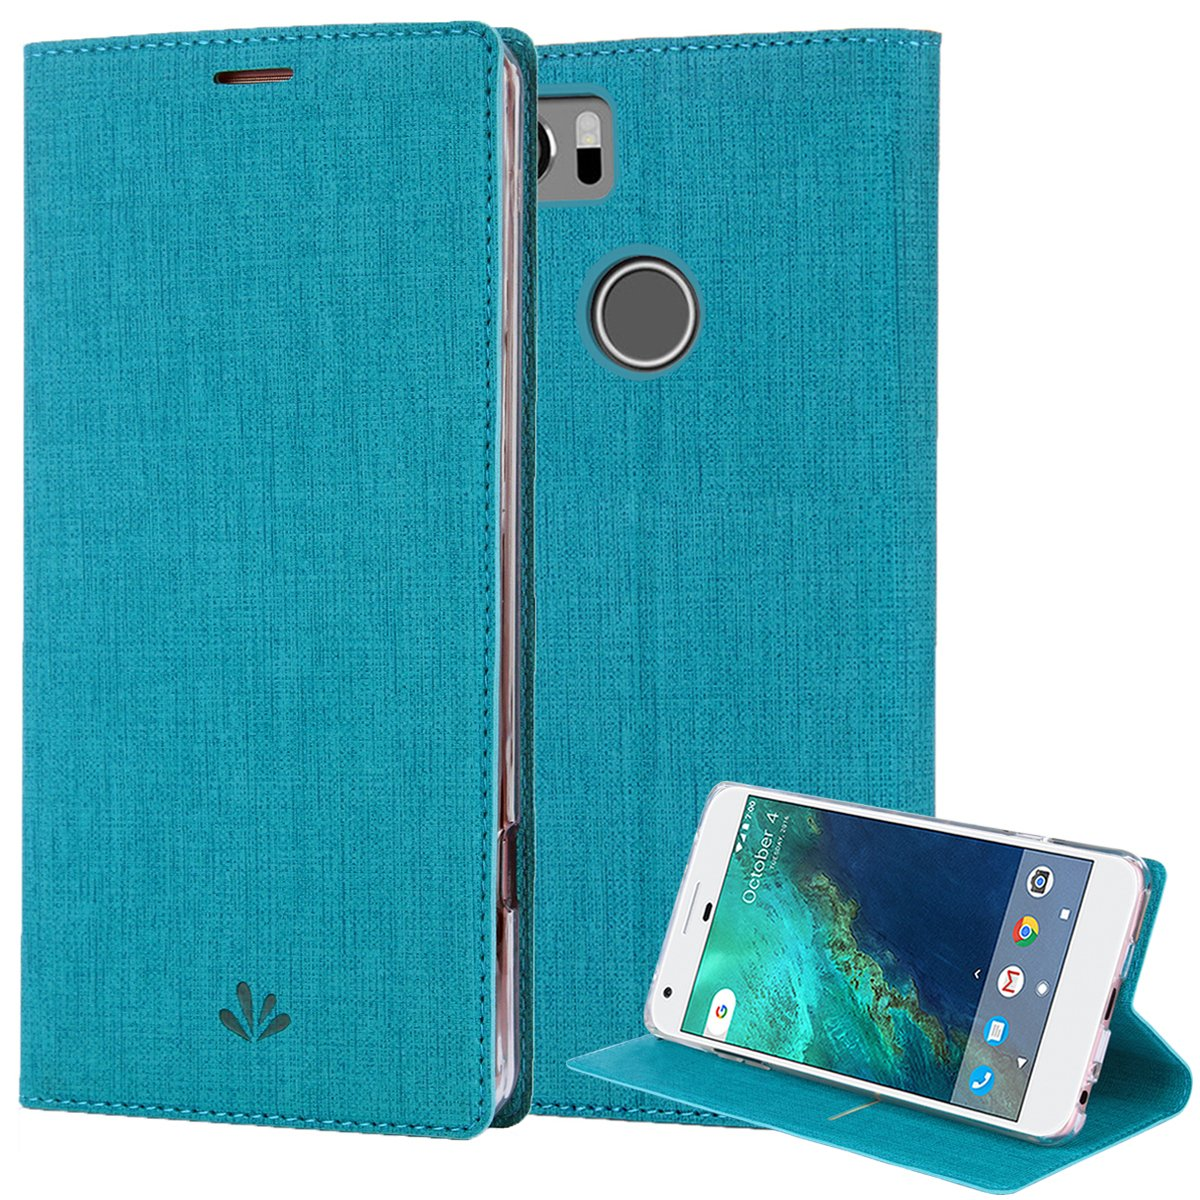 Google Pixel 2 XL Case, PU Leather Slim Flip Wallet Card Slots Cover Kickstand Feature and TPU Bumper Full Body Protection for Pixel 2 XL (Blue)